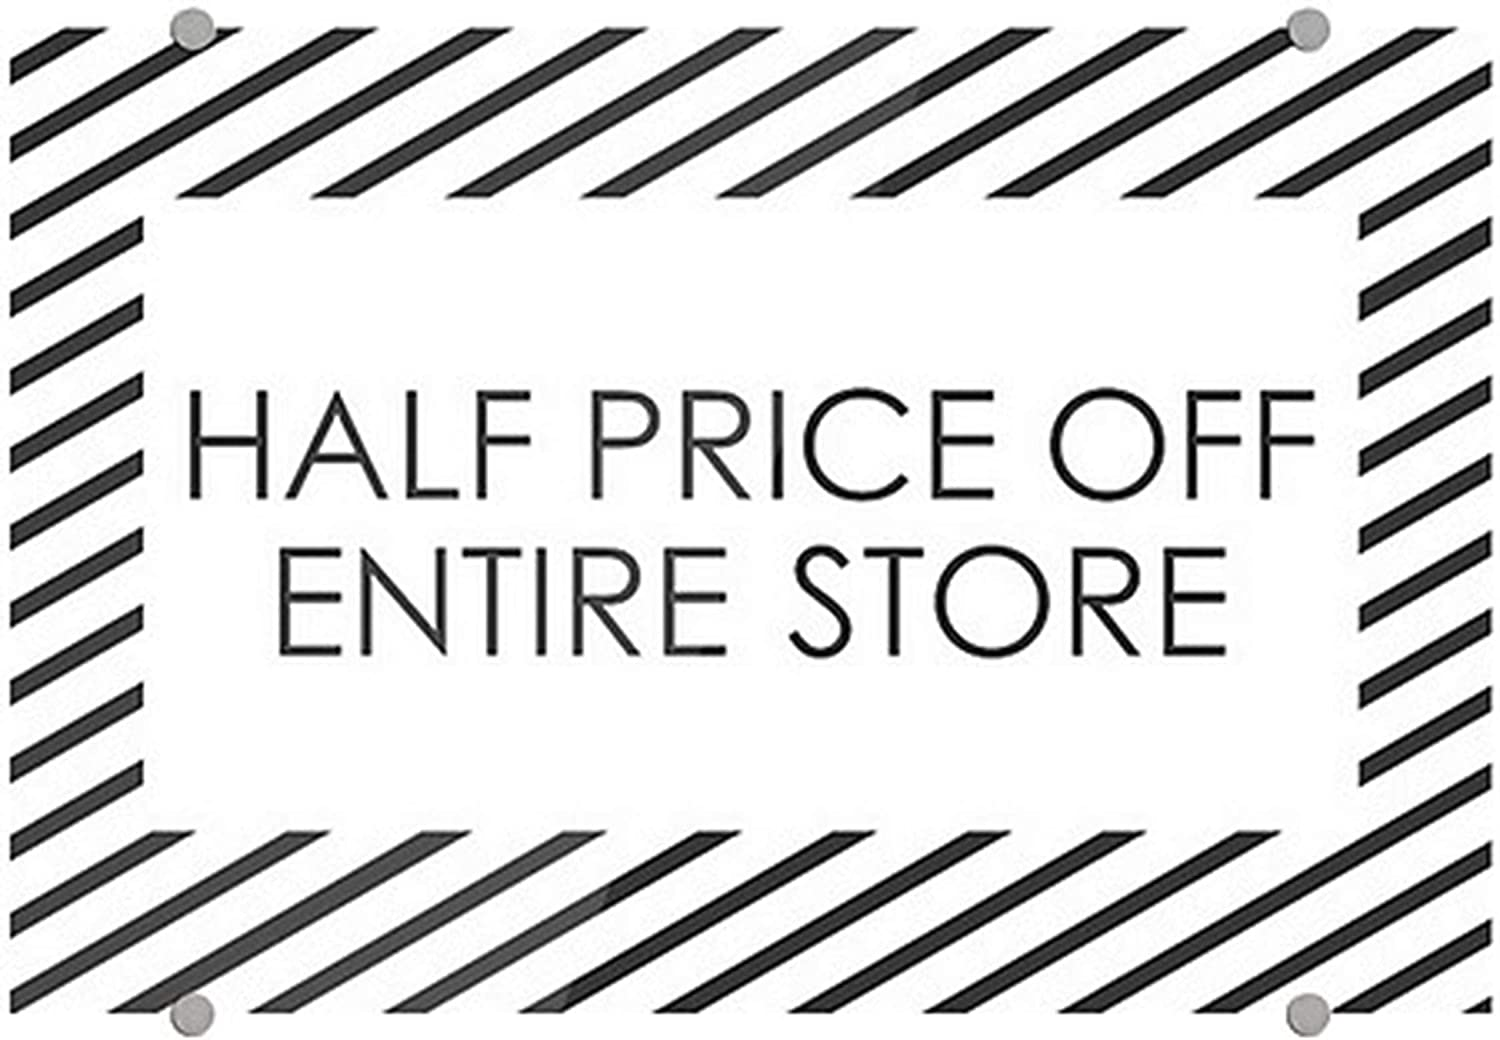 Overseas parallel import regular item CGSignLab 2455669_5absw_27x18_None Half Price Off Entire Memphis Mall - Store